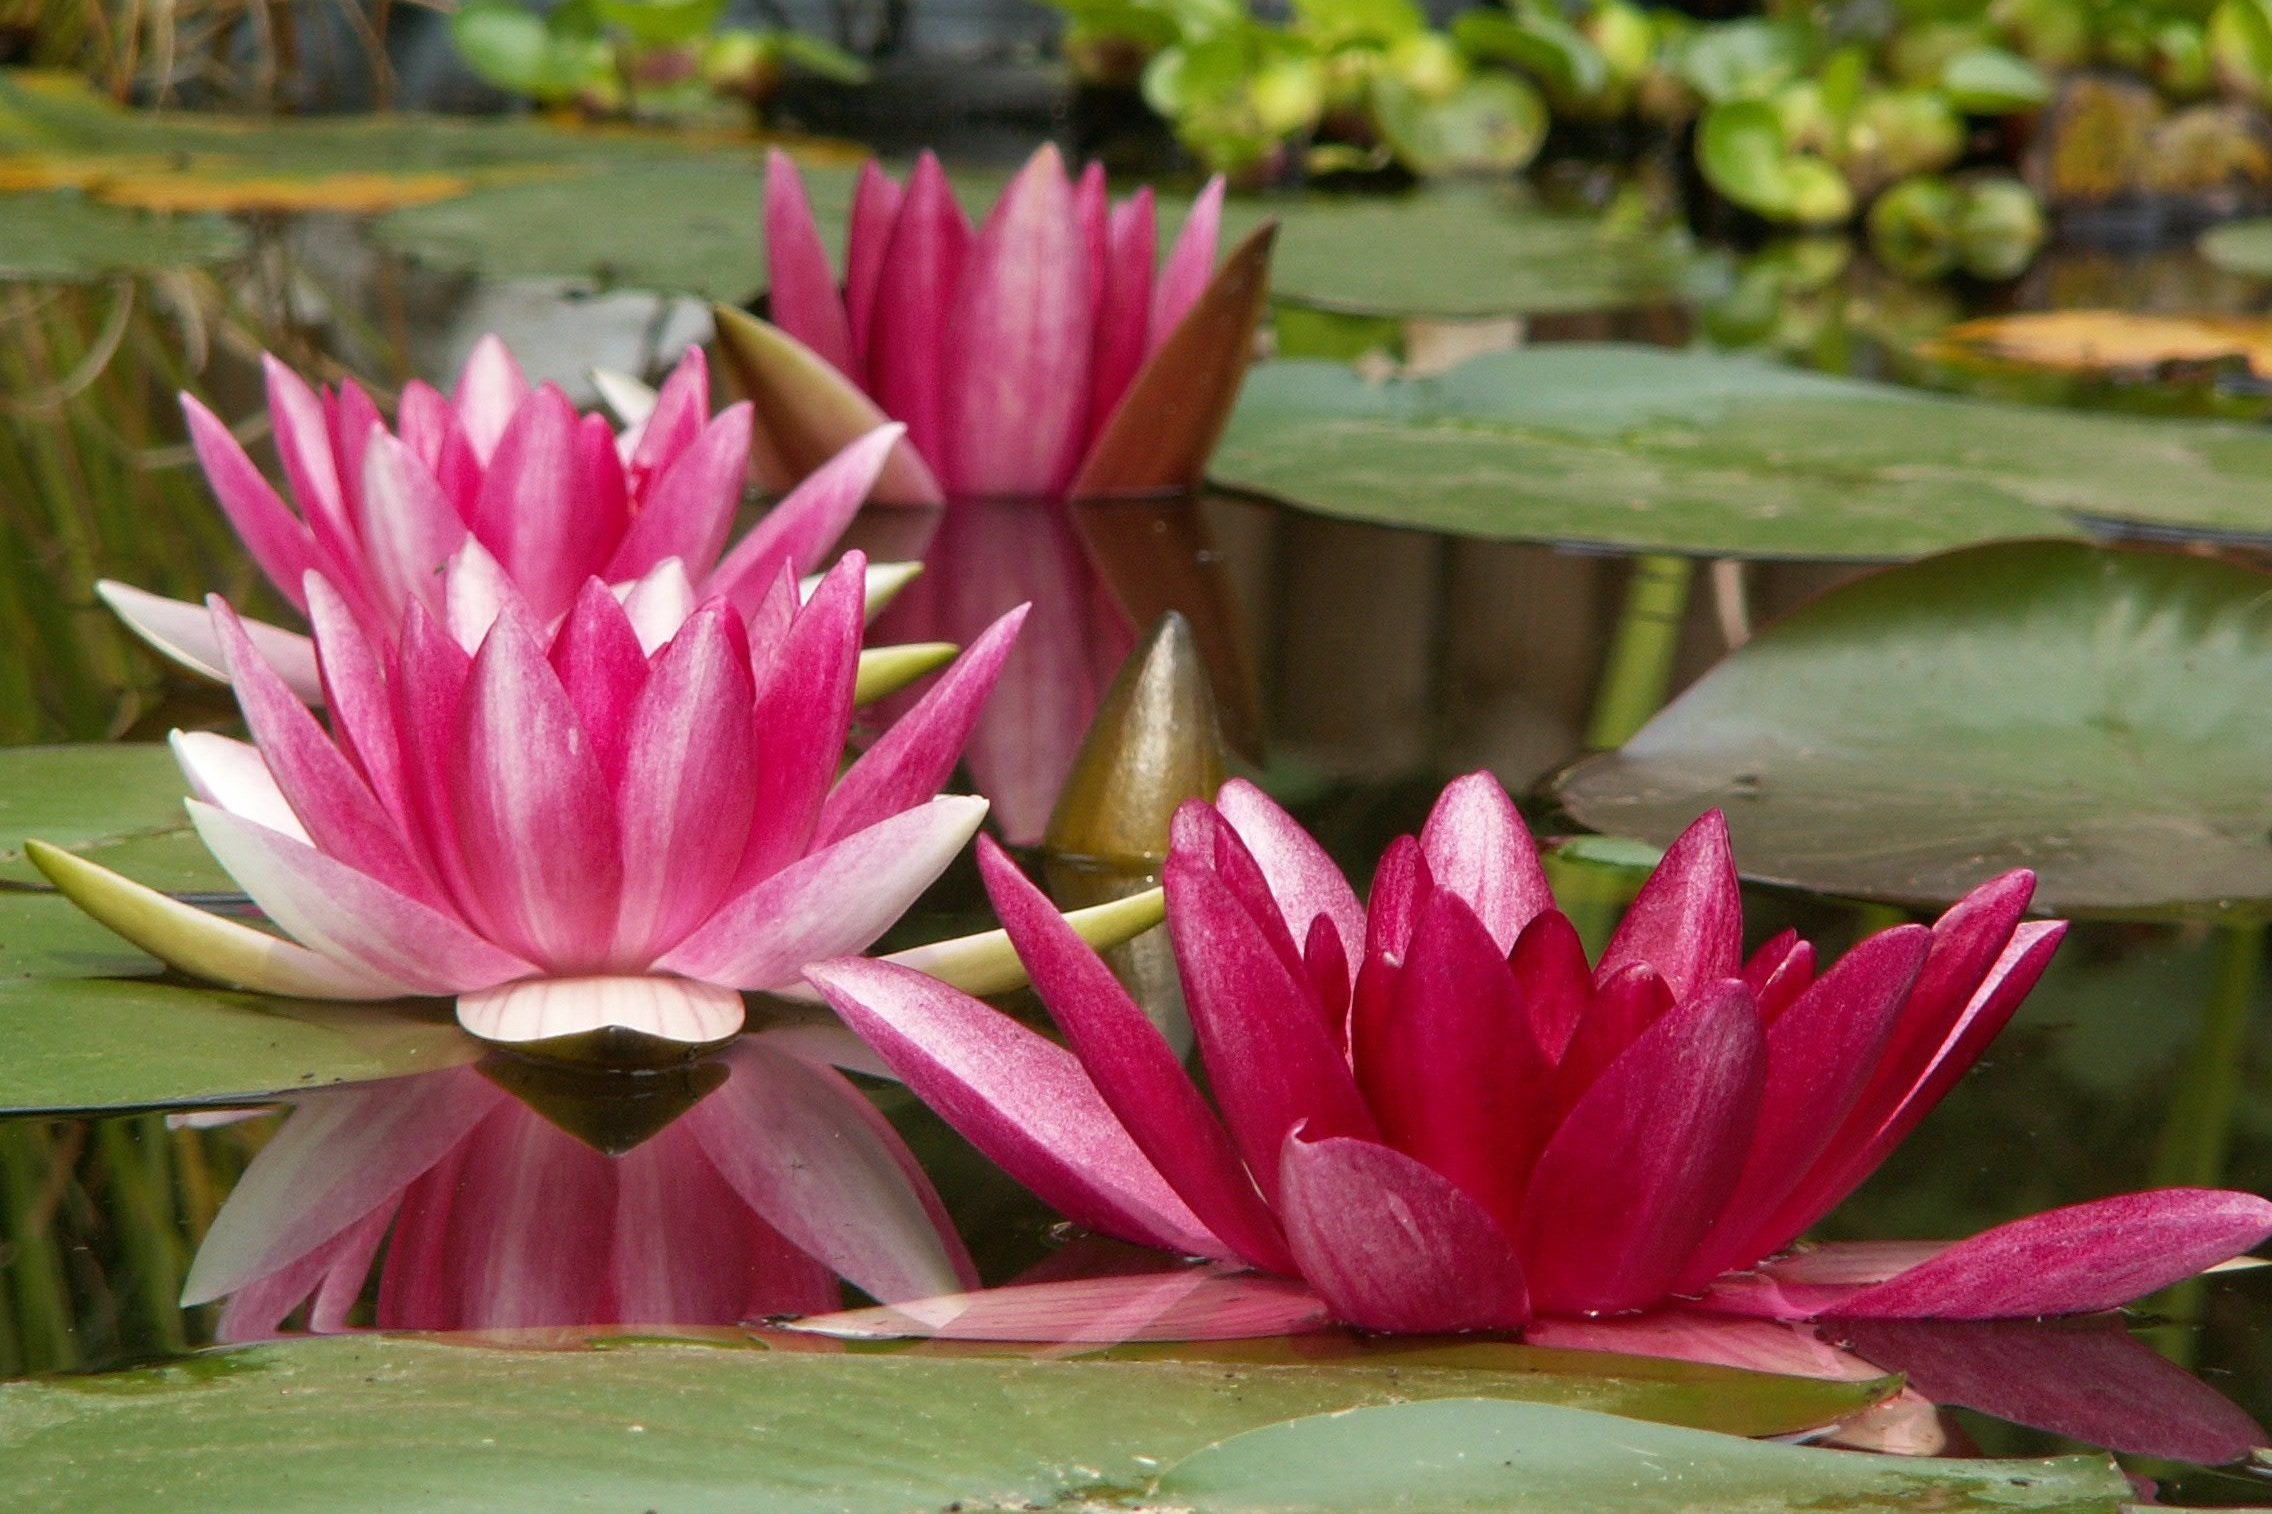 Growing Water Lilies - Water lilies (Nymphaea) are among some of the most beautiful blooming pond plants.